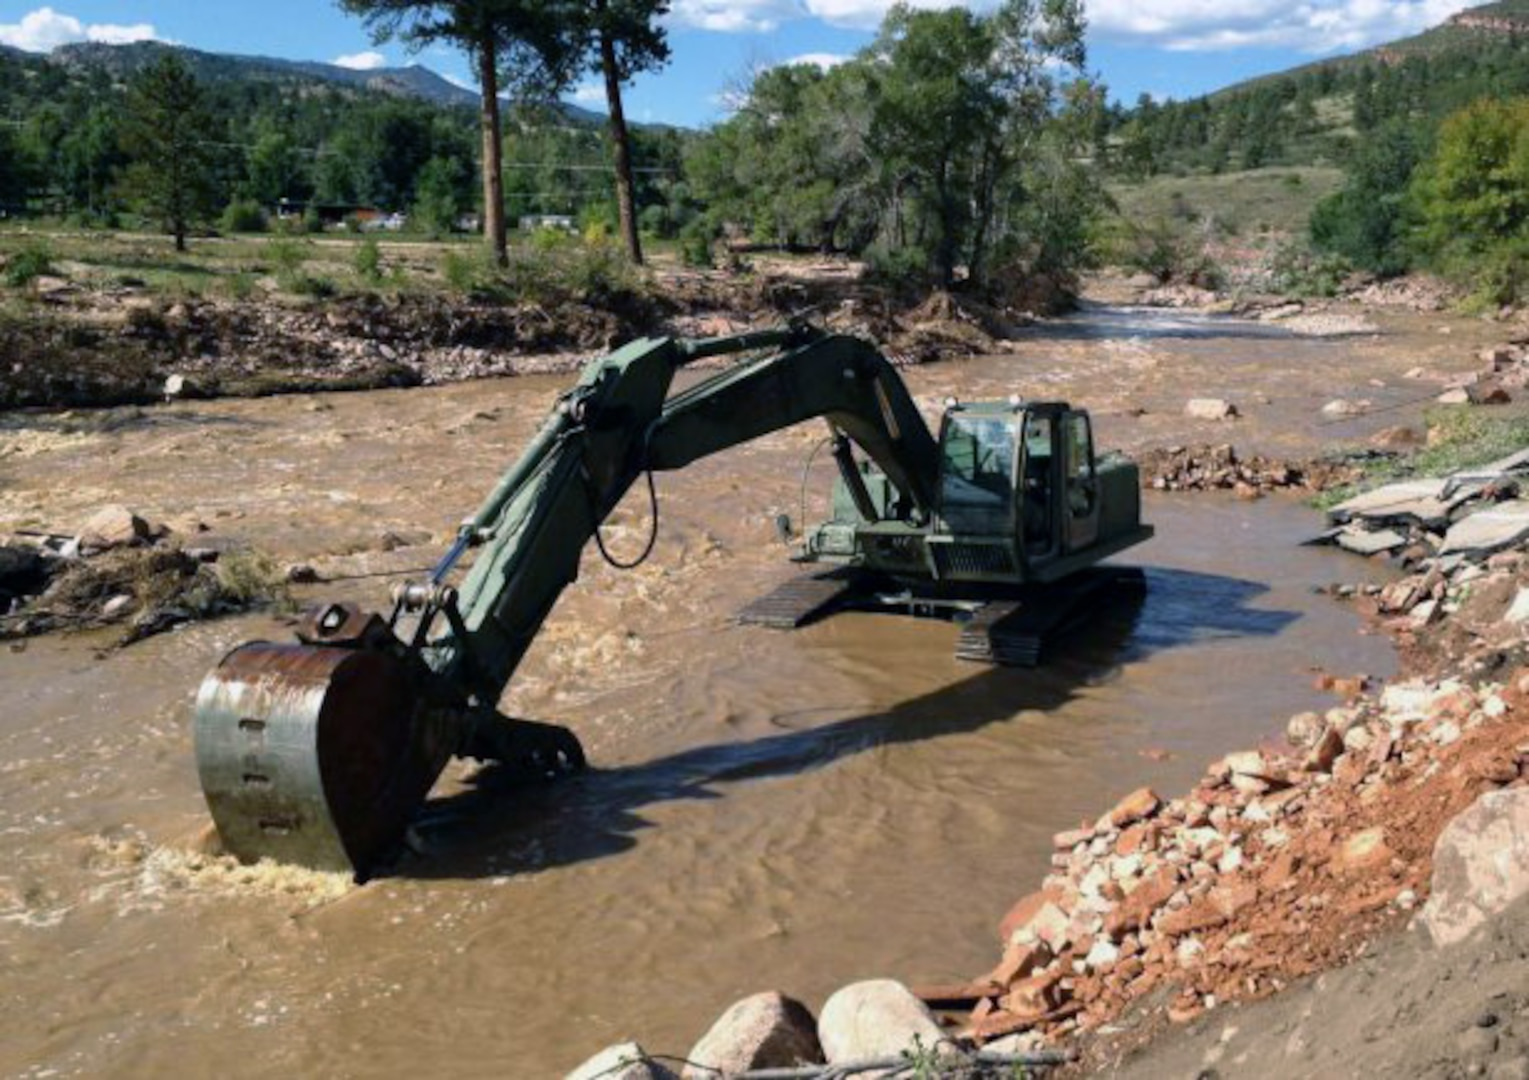 The Texas Army National Guard's 36th Infantry Division's Domestic All-Hazards Response Team-West continues to coordinate assistance requests and support for the Colorado flood relief effort. Pictured here, a military hydraulic excavator works to clear the remainder of a Colorado road after a flood washed it away.